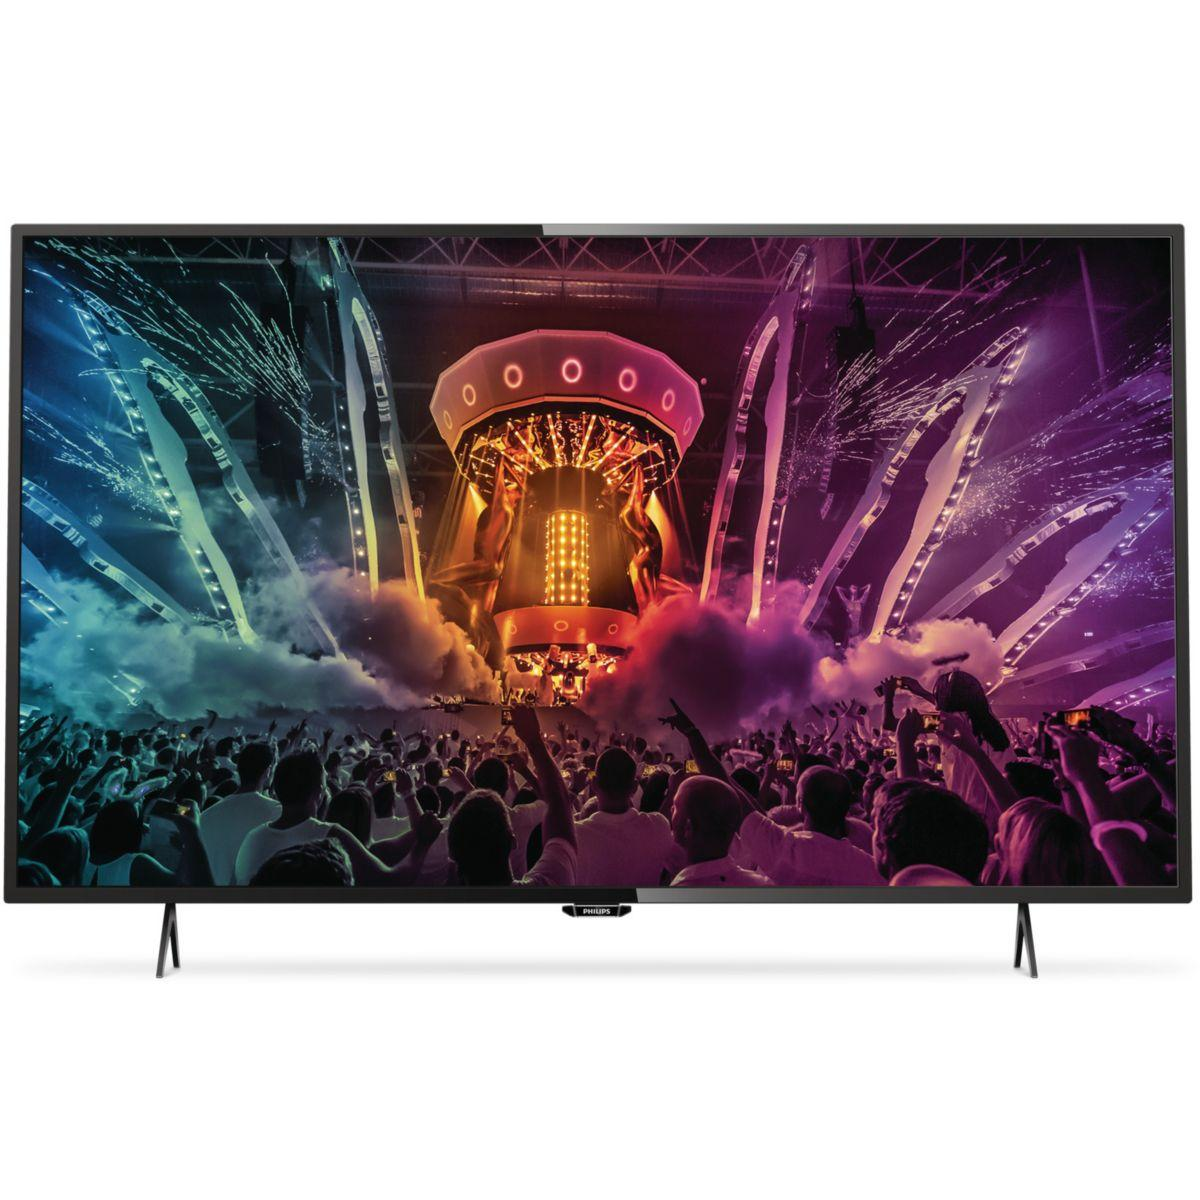 TV PHILIPS 49PUH6101 4K 800 PPI SMART TV